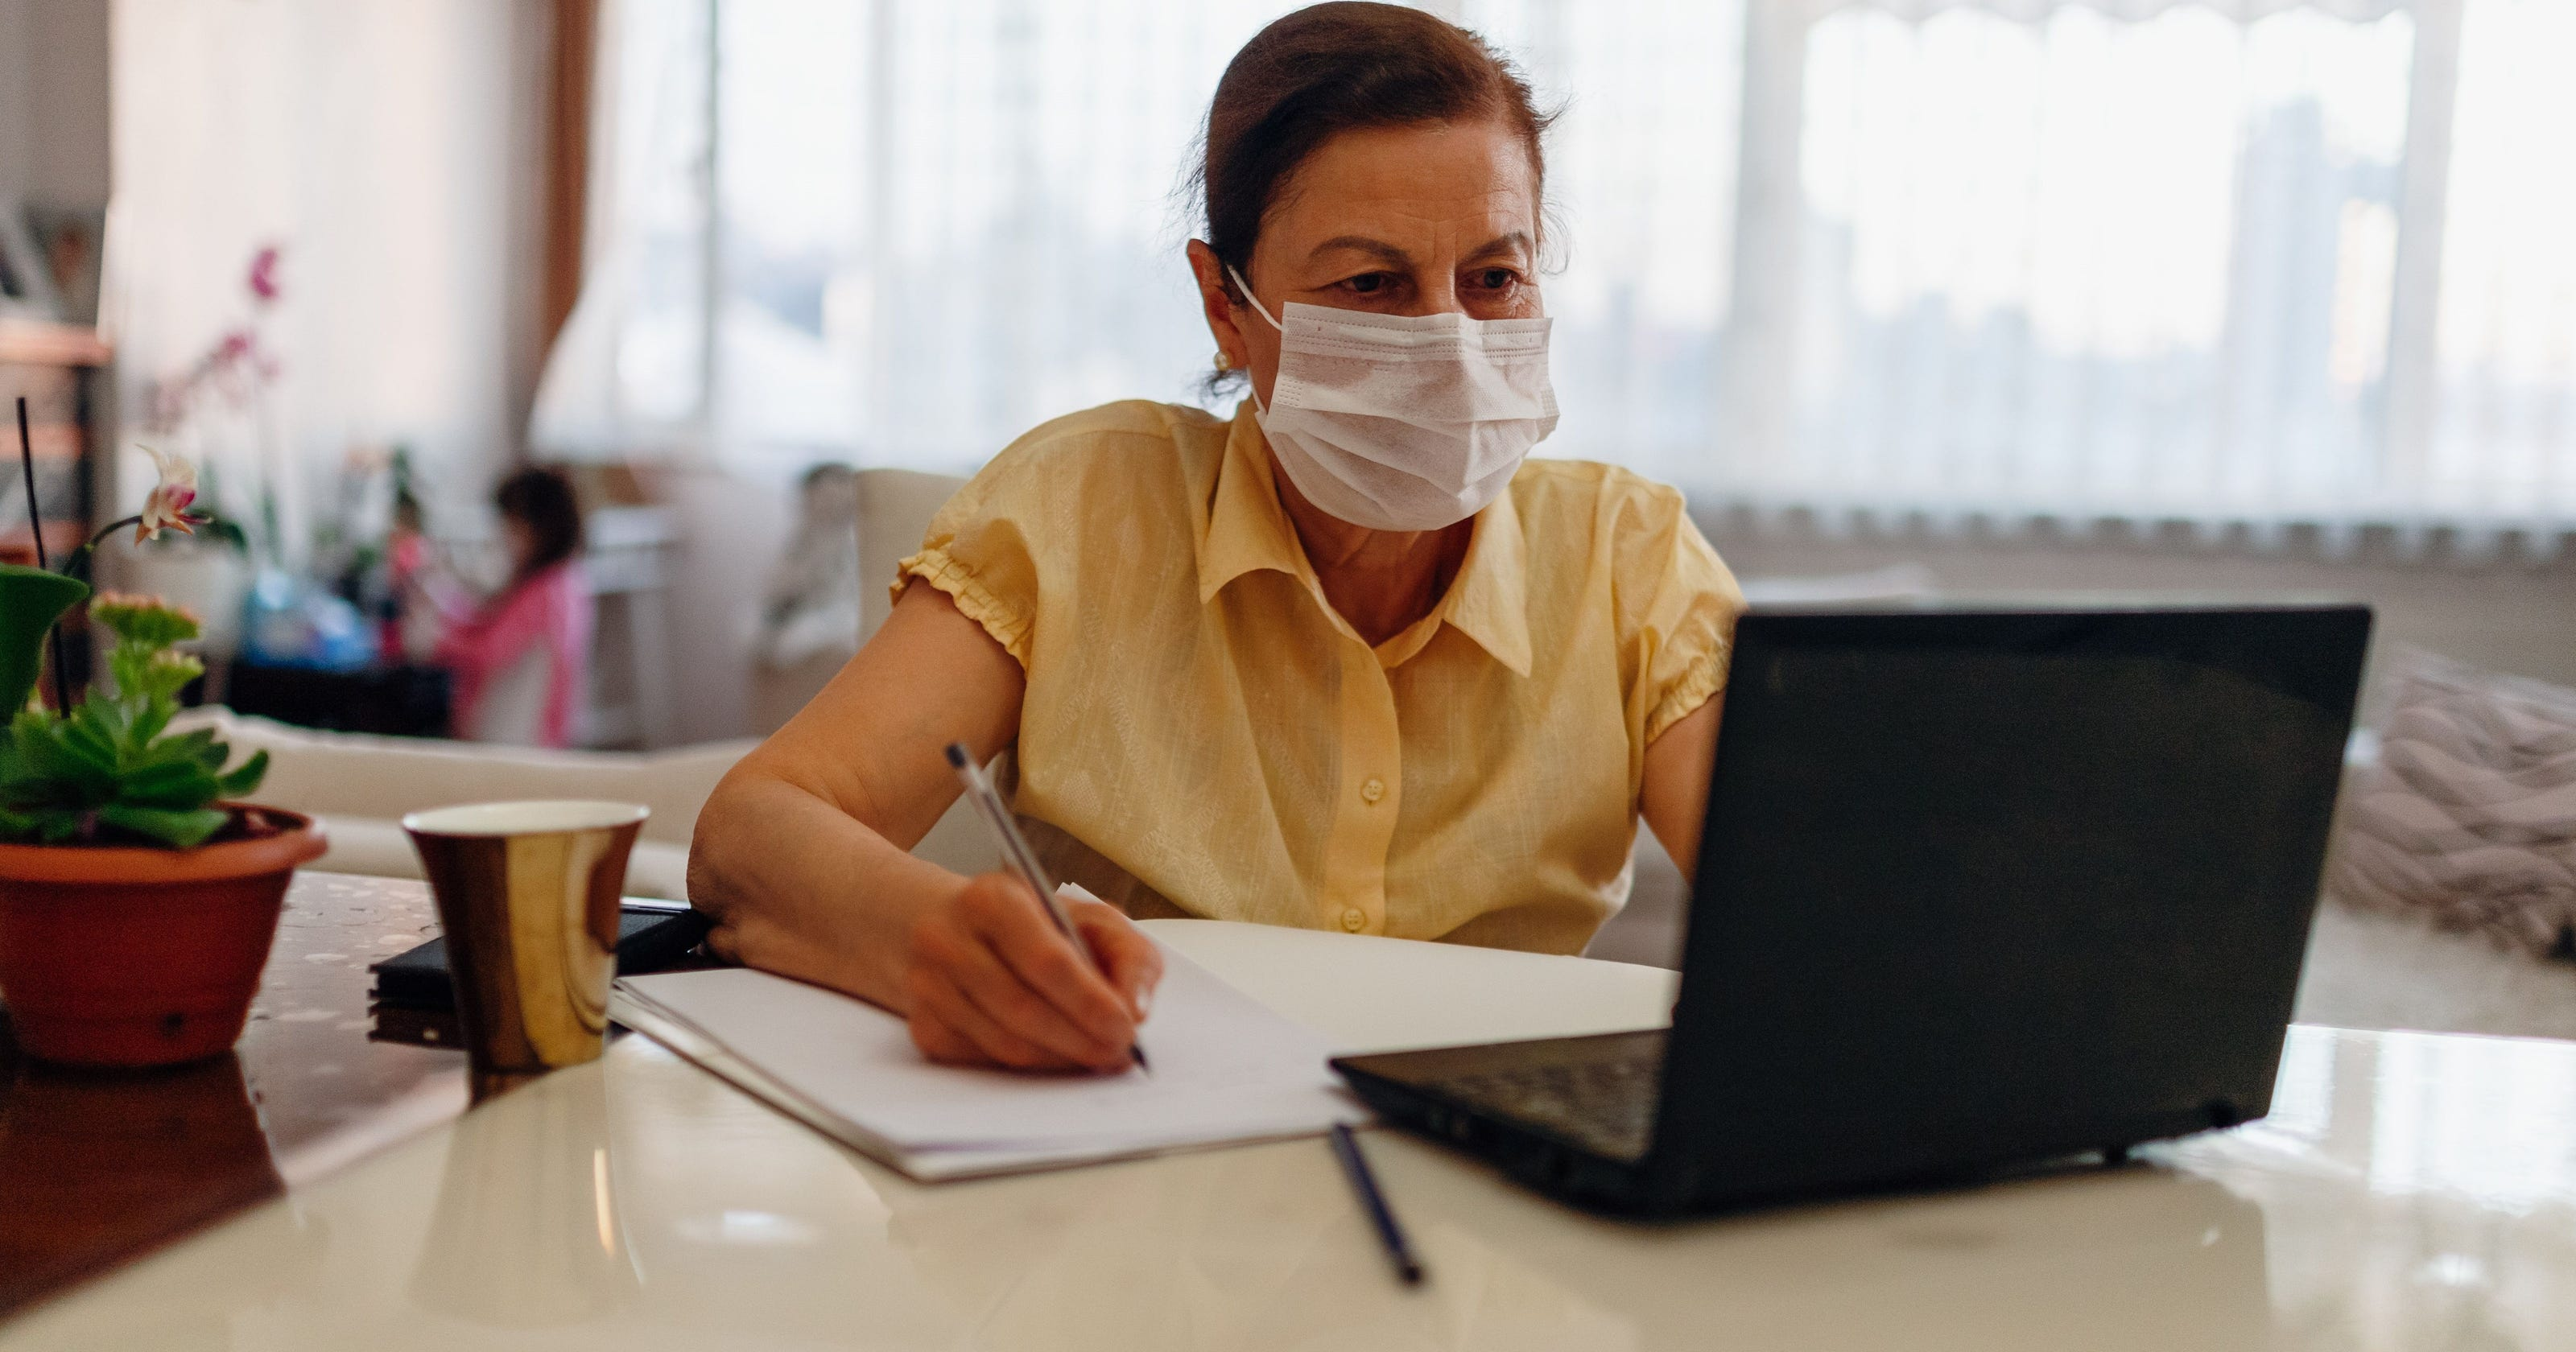 Coronavirus pandemic might be 'game changer' for working at home